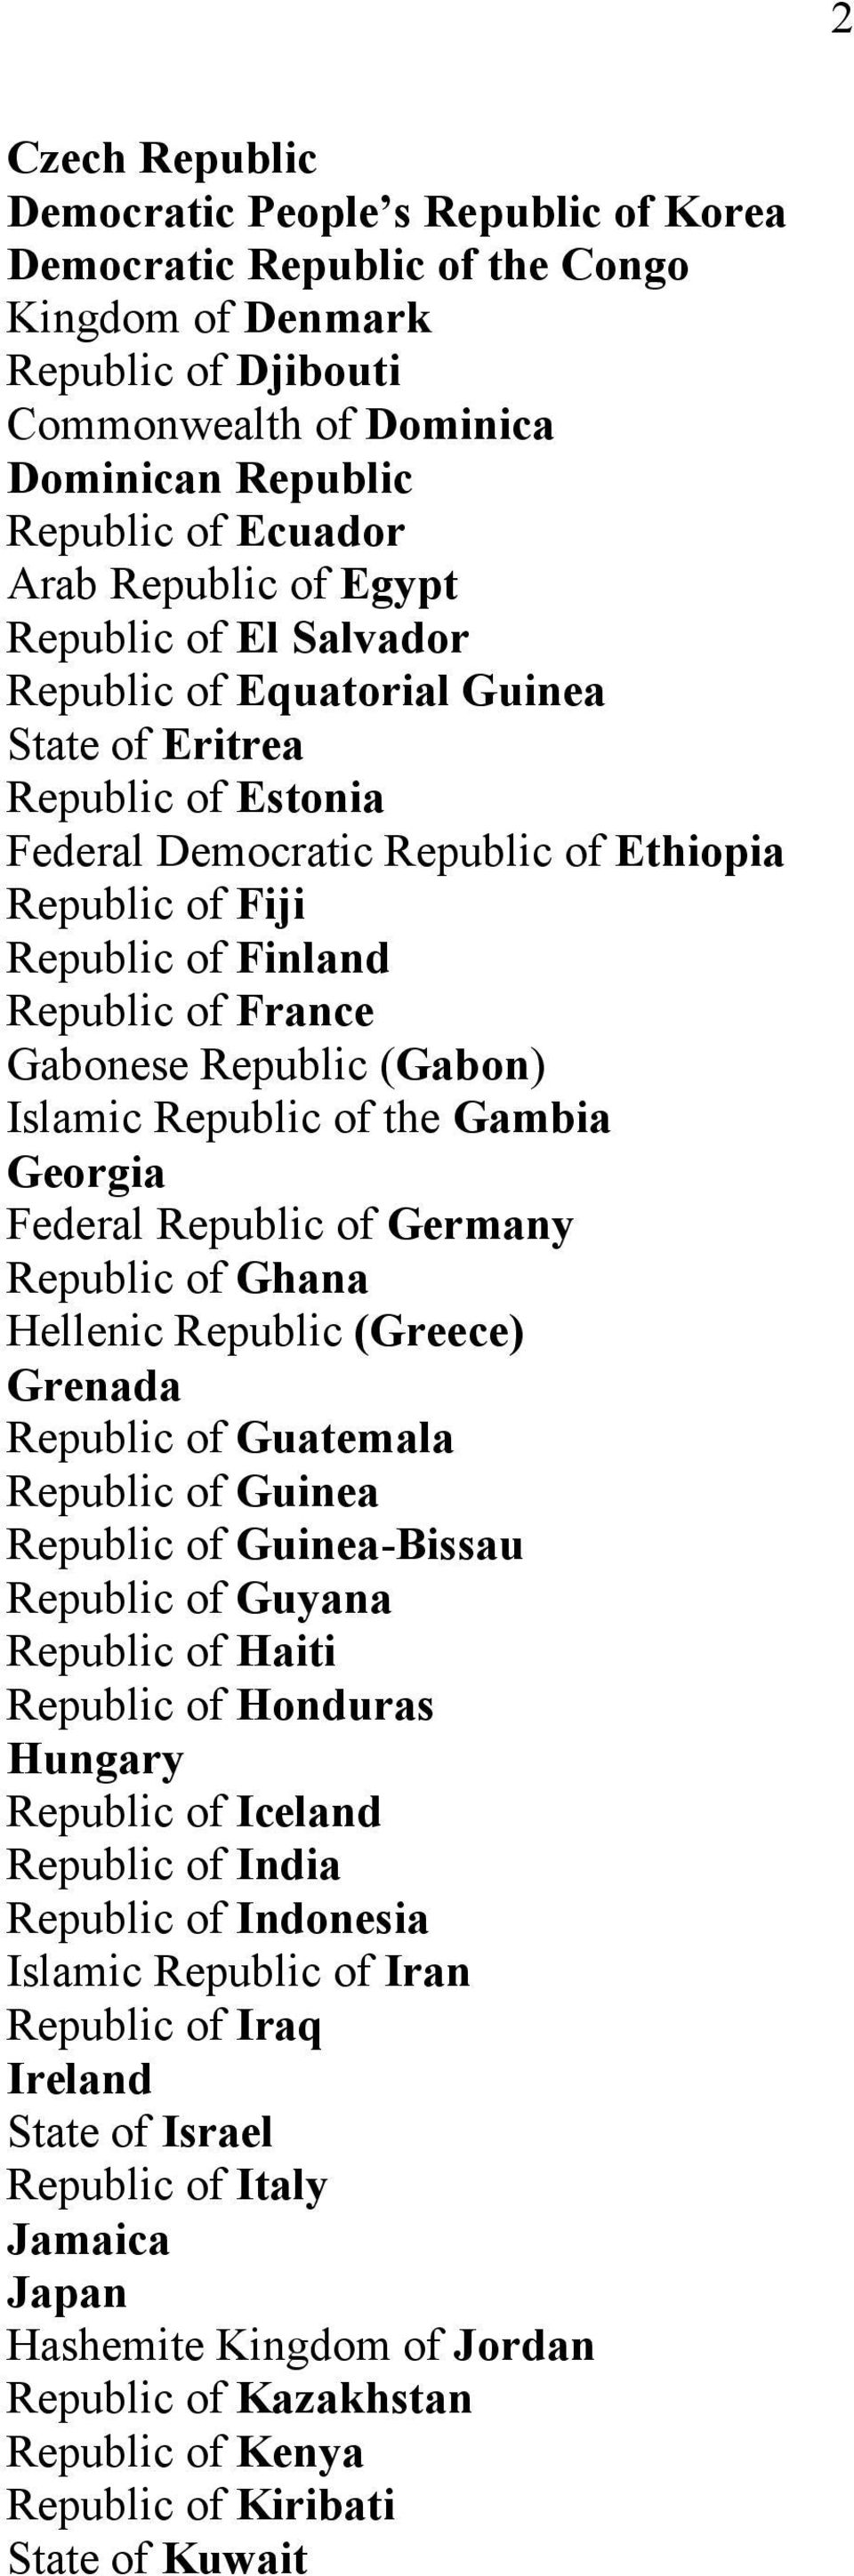 France Gabonese Republic (Gabon) Islamic Republic of the Gambia Georgia Federal Republic of Germany Republic of Ghana Hellenic Republic (Greece) Grenada Republic of Guatemala Republic of Guinea